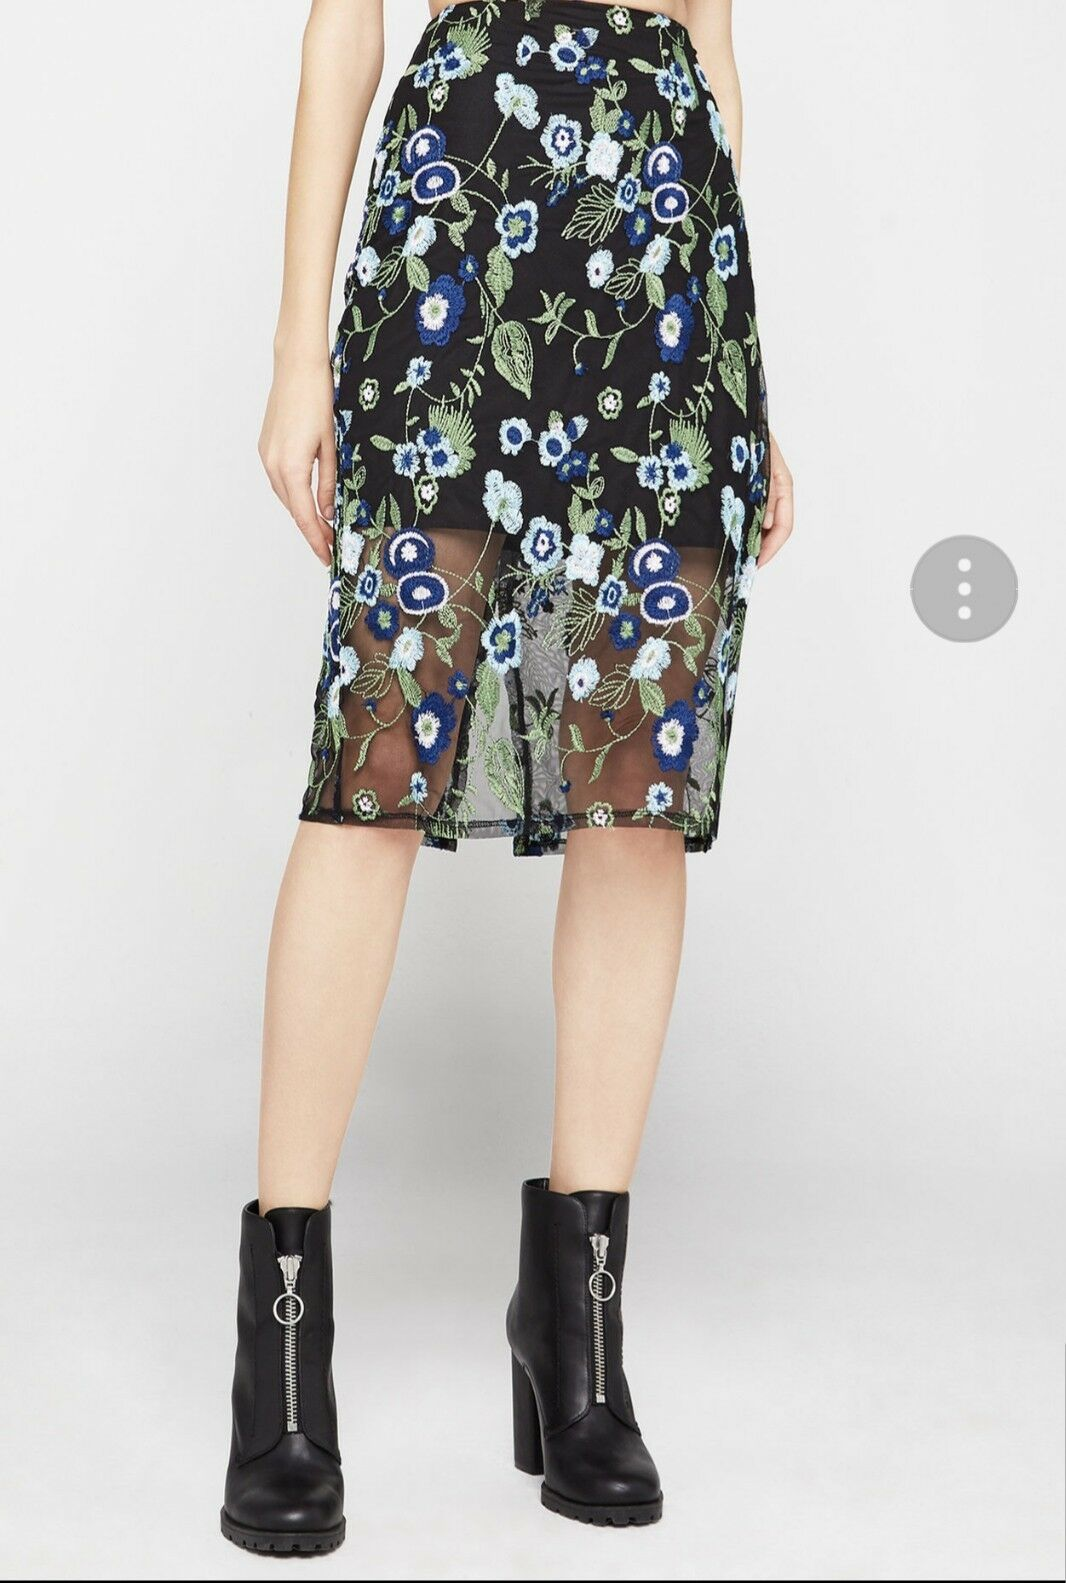 NWT BCBGENERATION Floral Embroidered Skirt